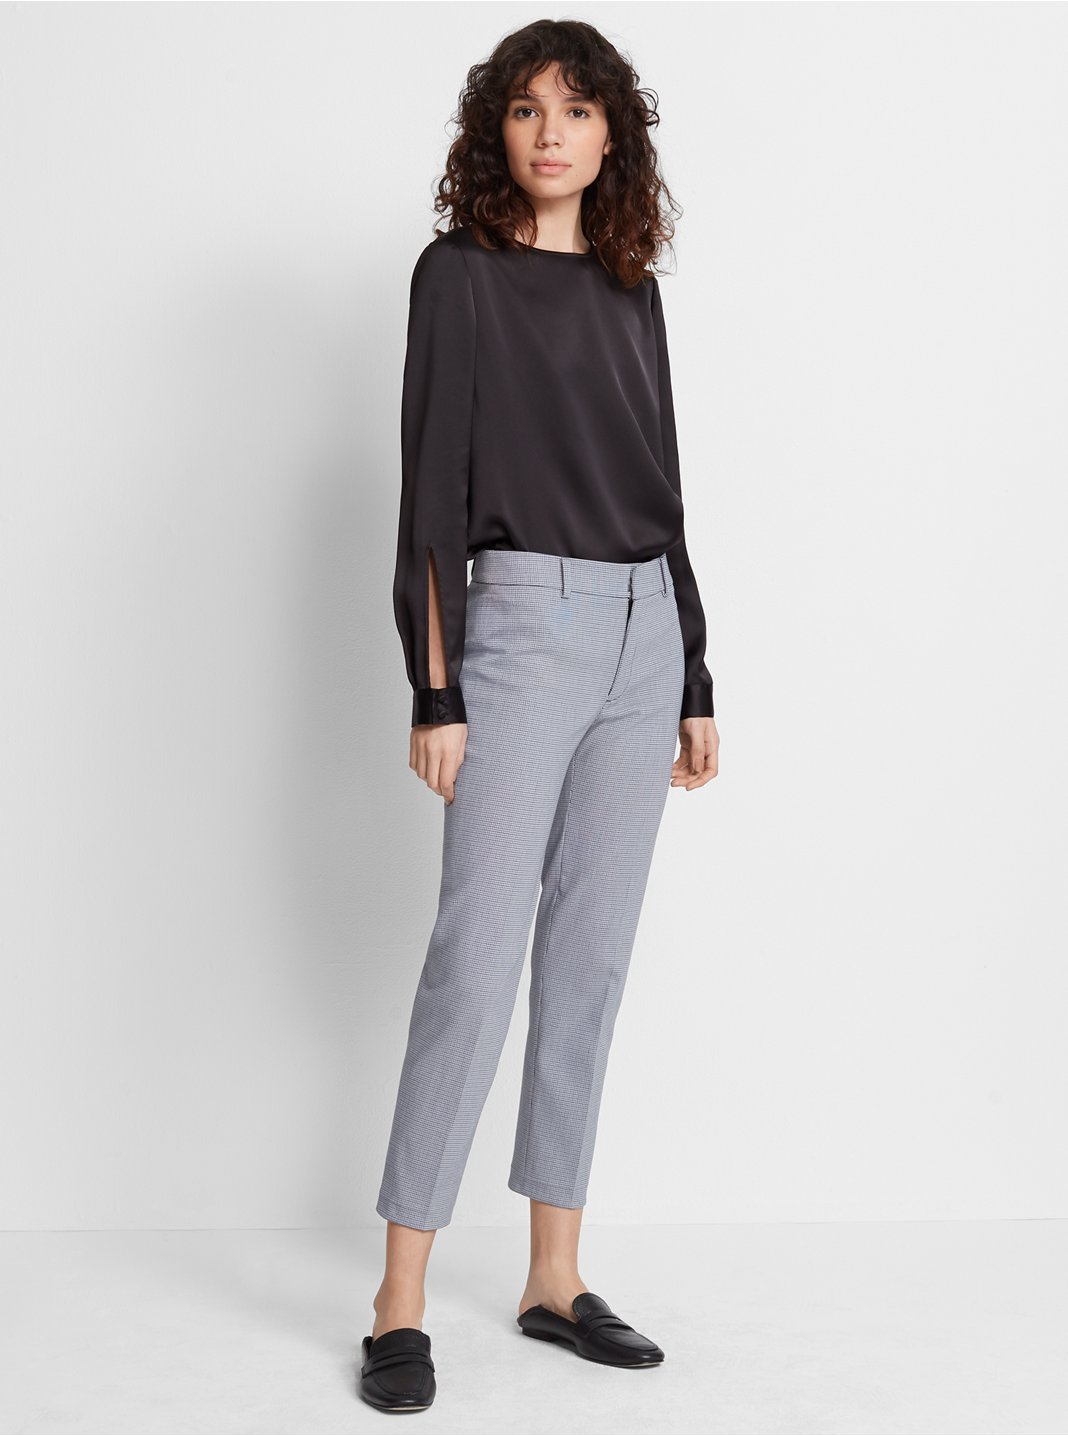 4ad9b35ff5cb Womens Pants | Club Monaco